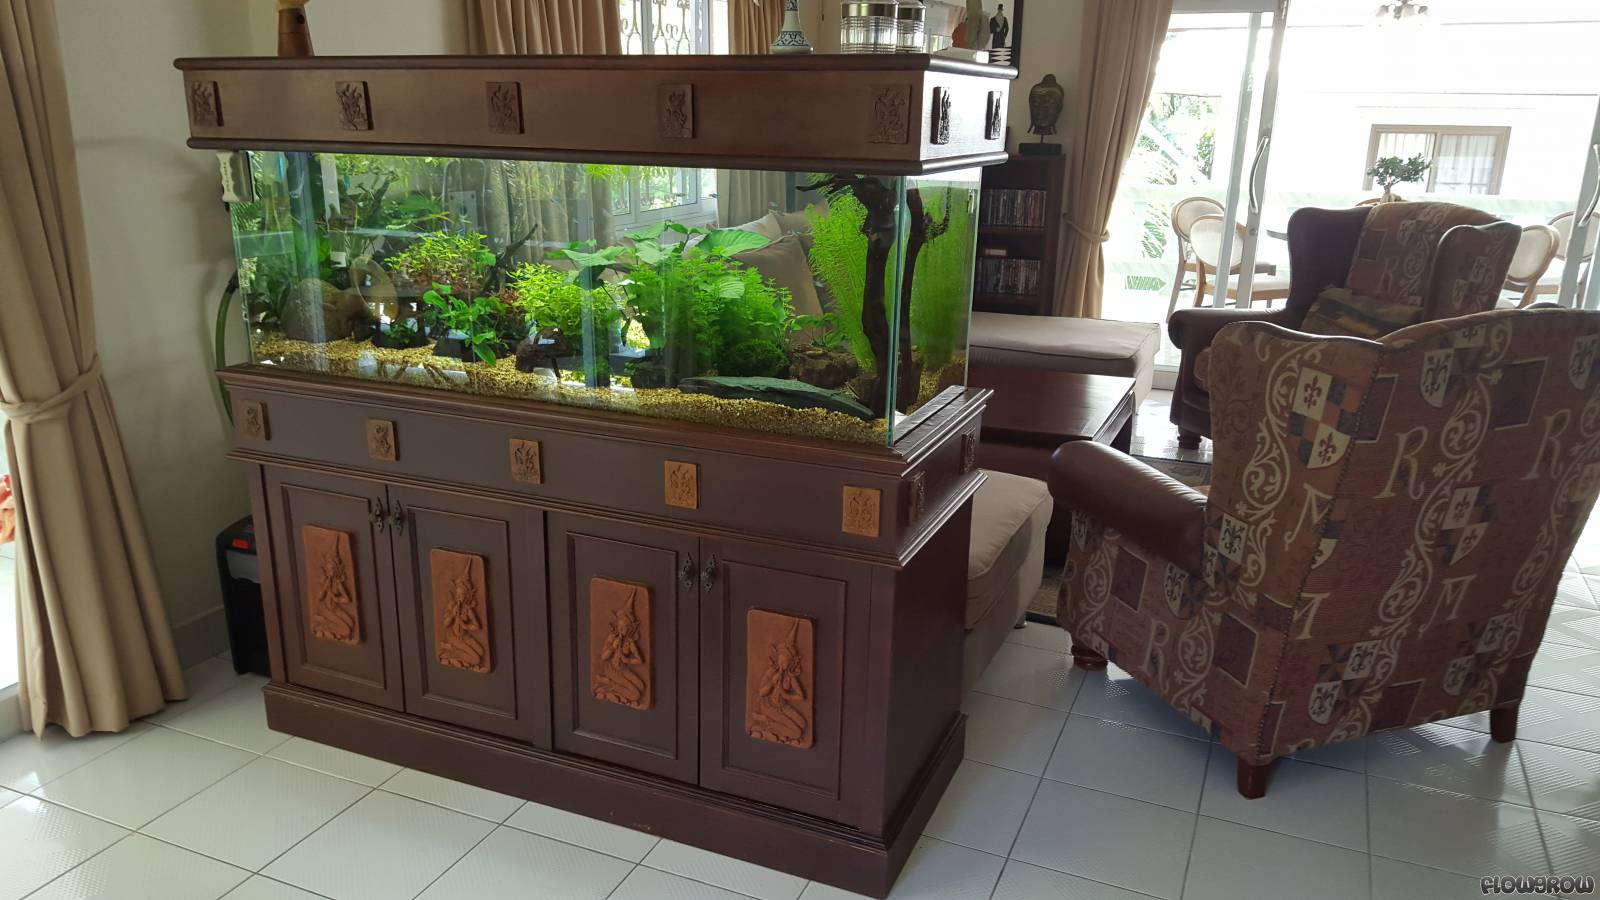 koh samui natural flowgrow aquascape aquarien datenbank. Black Bedroom Furniture Sets. Home Design Ideas